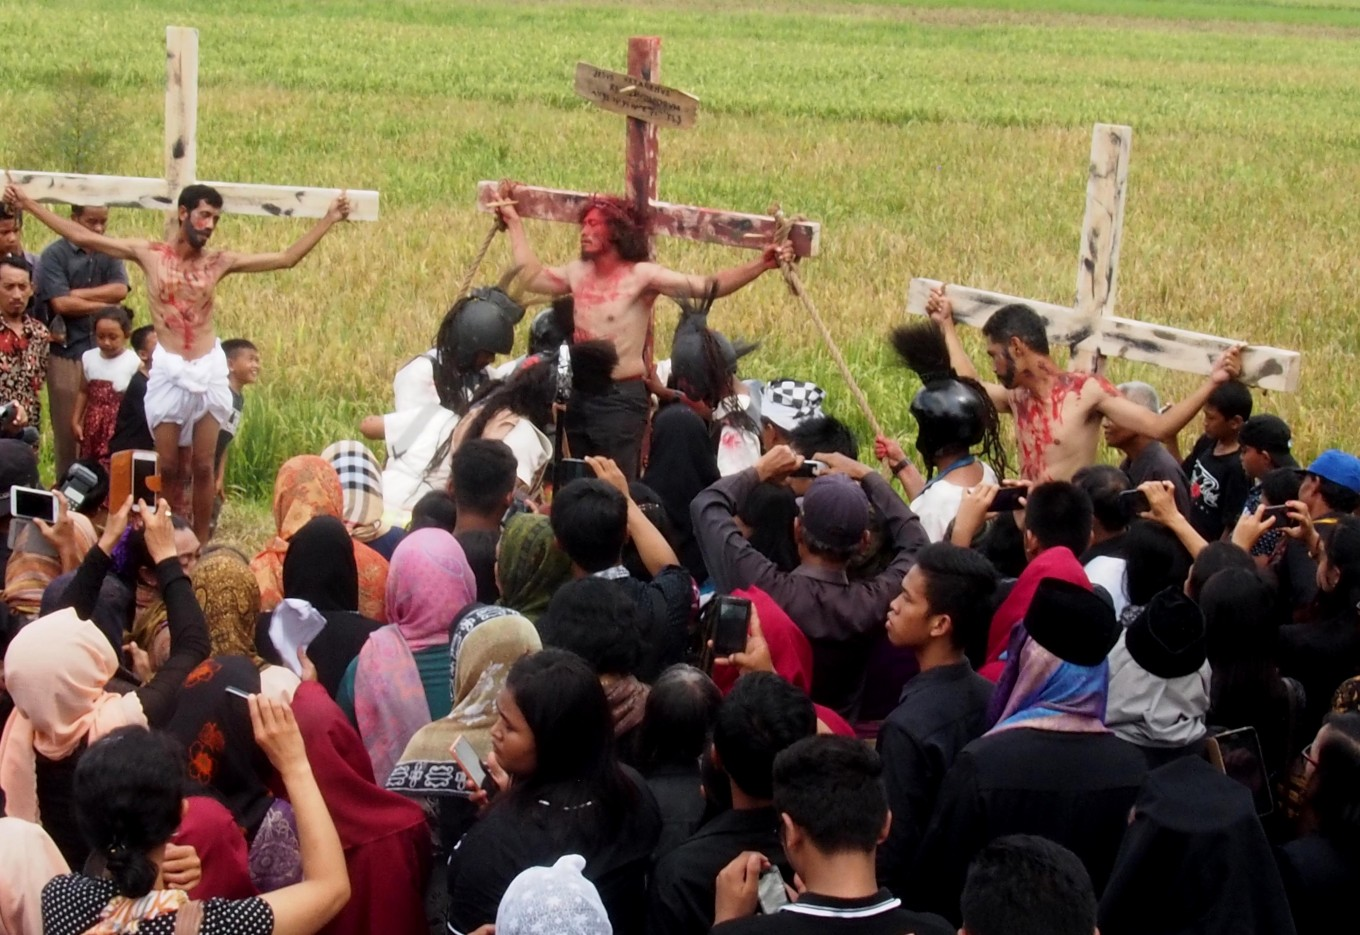 Catholic performers from Ngolodono Church in Karangdowo, Klaten, Central Java, act out the crucifixion of Jesus Christ on Good Friday. JP/Ganug Nugroho Adi